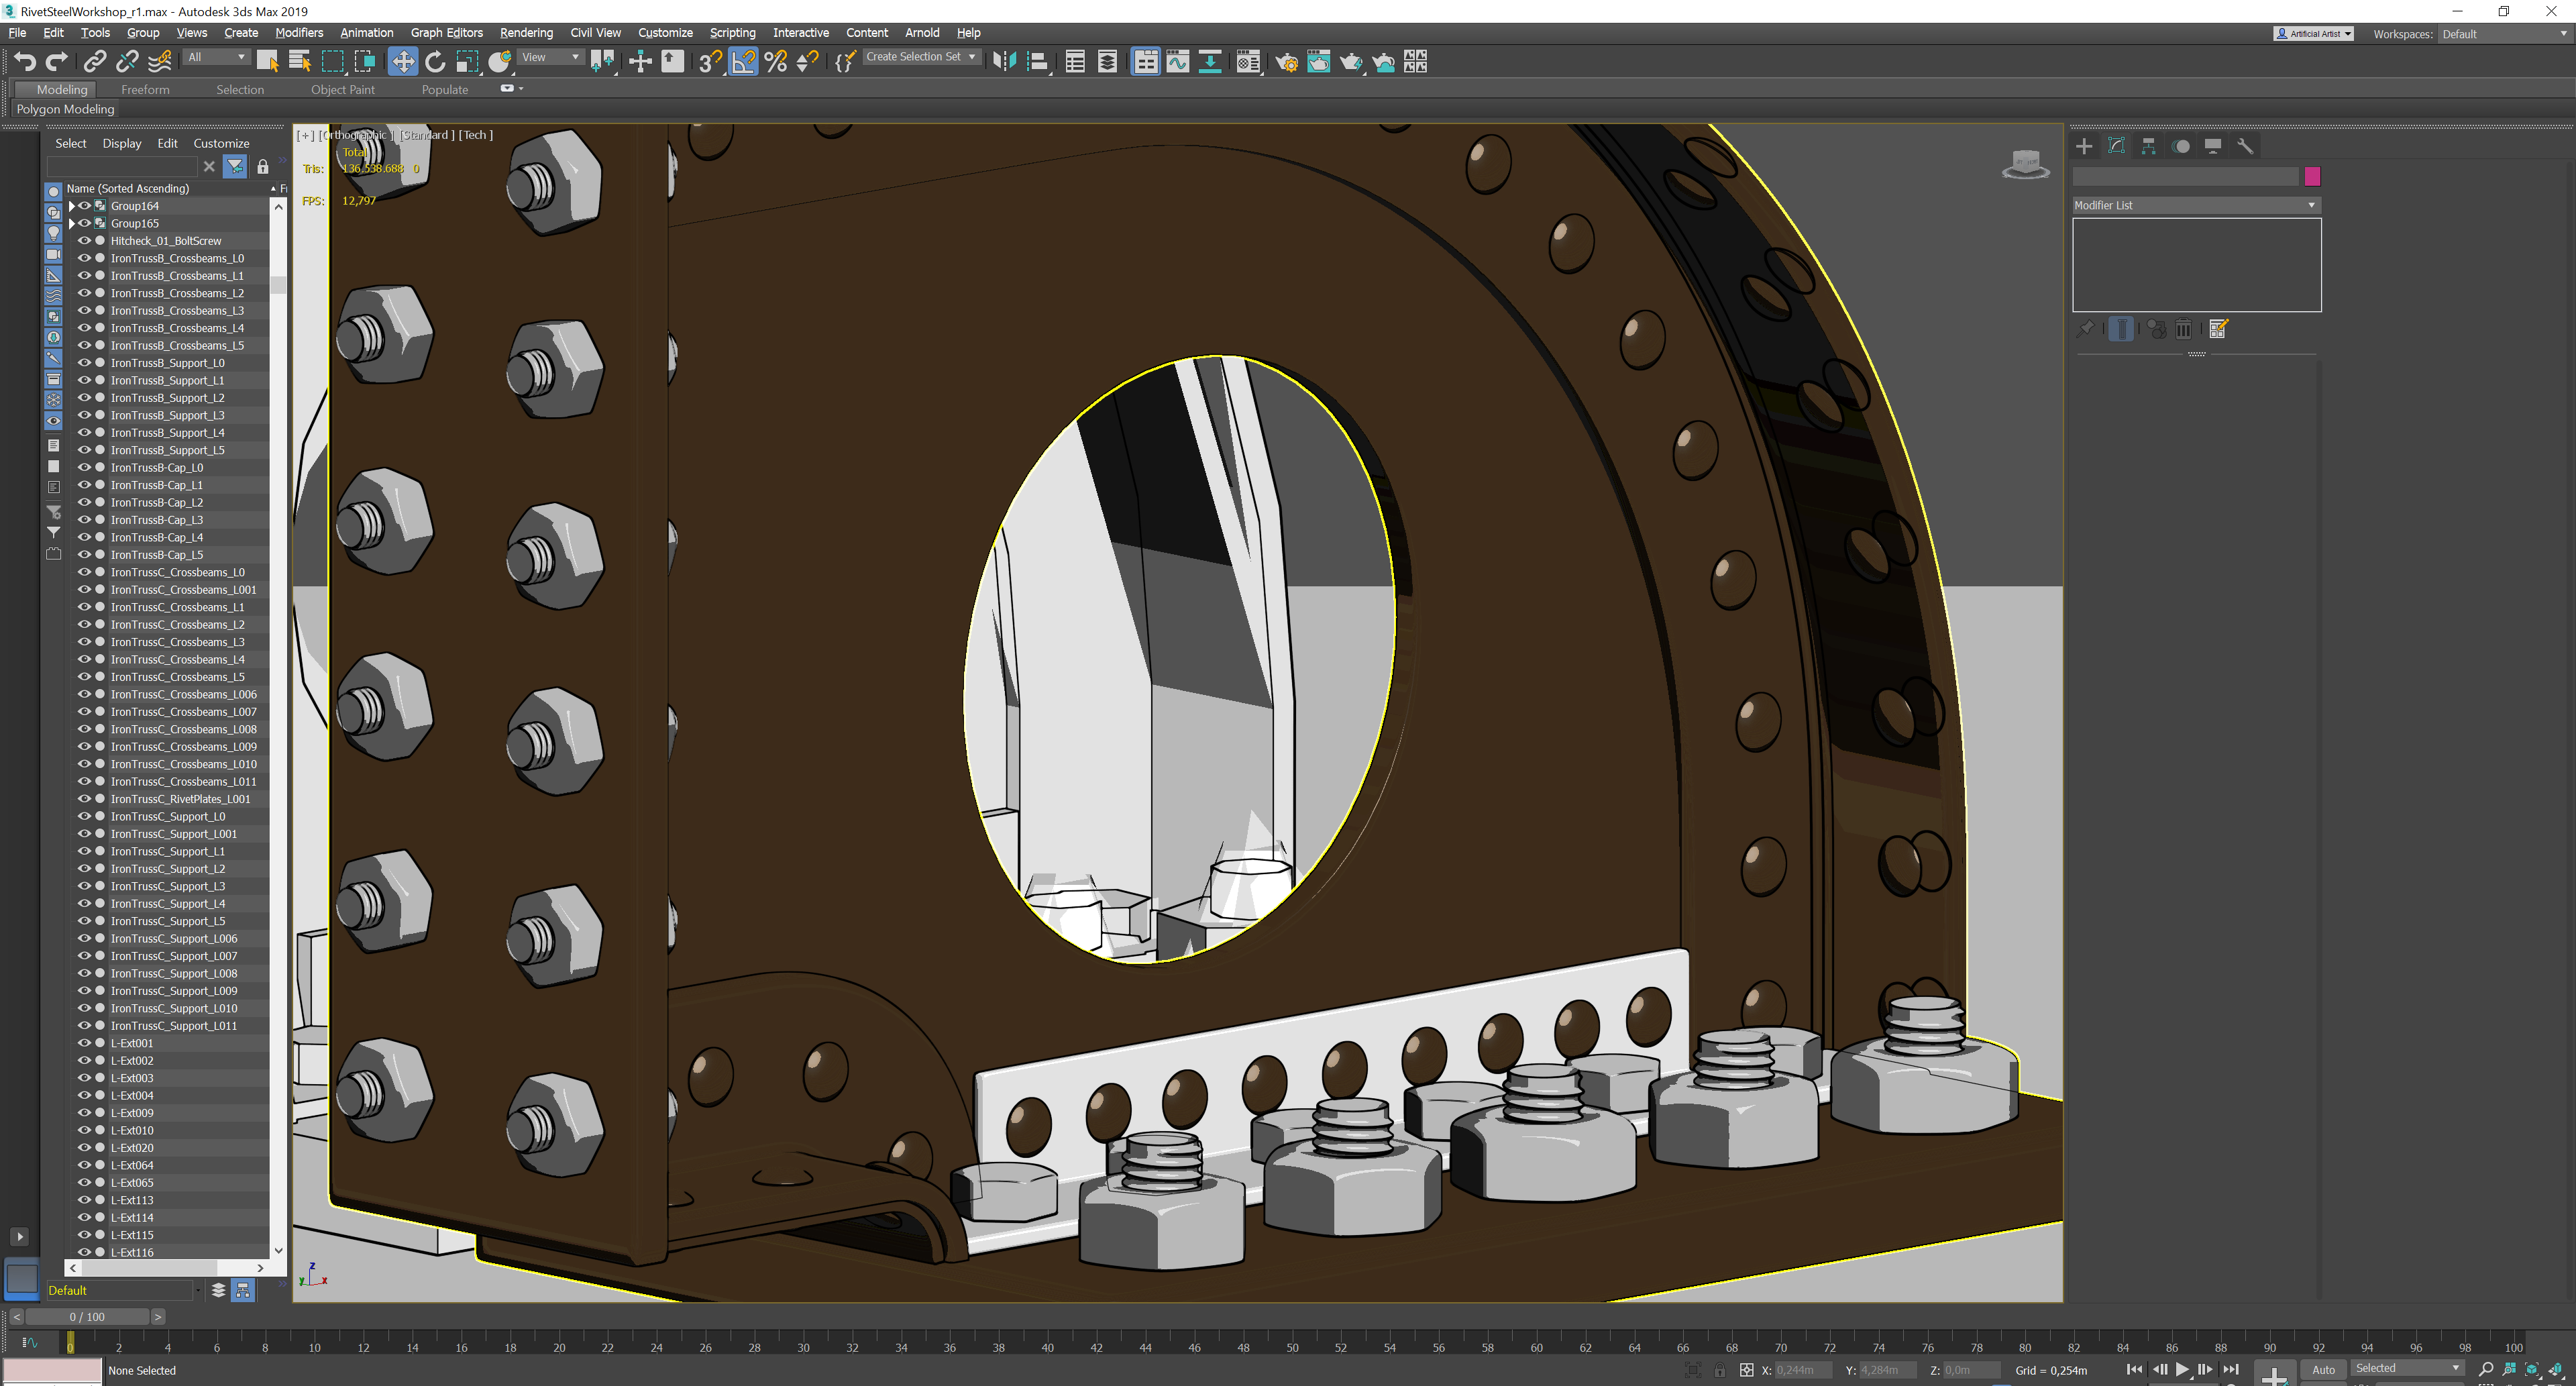 RivetSteelWorkshop_r1.max - Autodesk 3ds Max 2019  27.10.2020 11_39_15.png